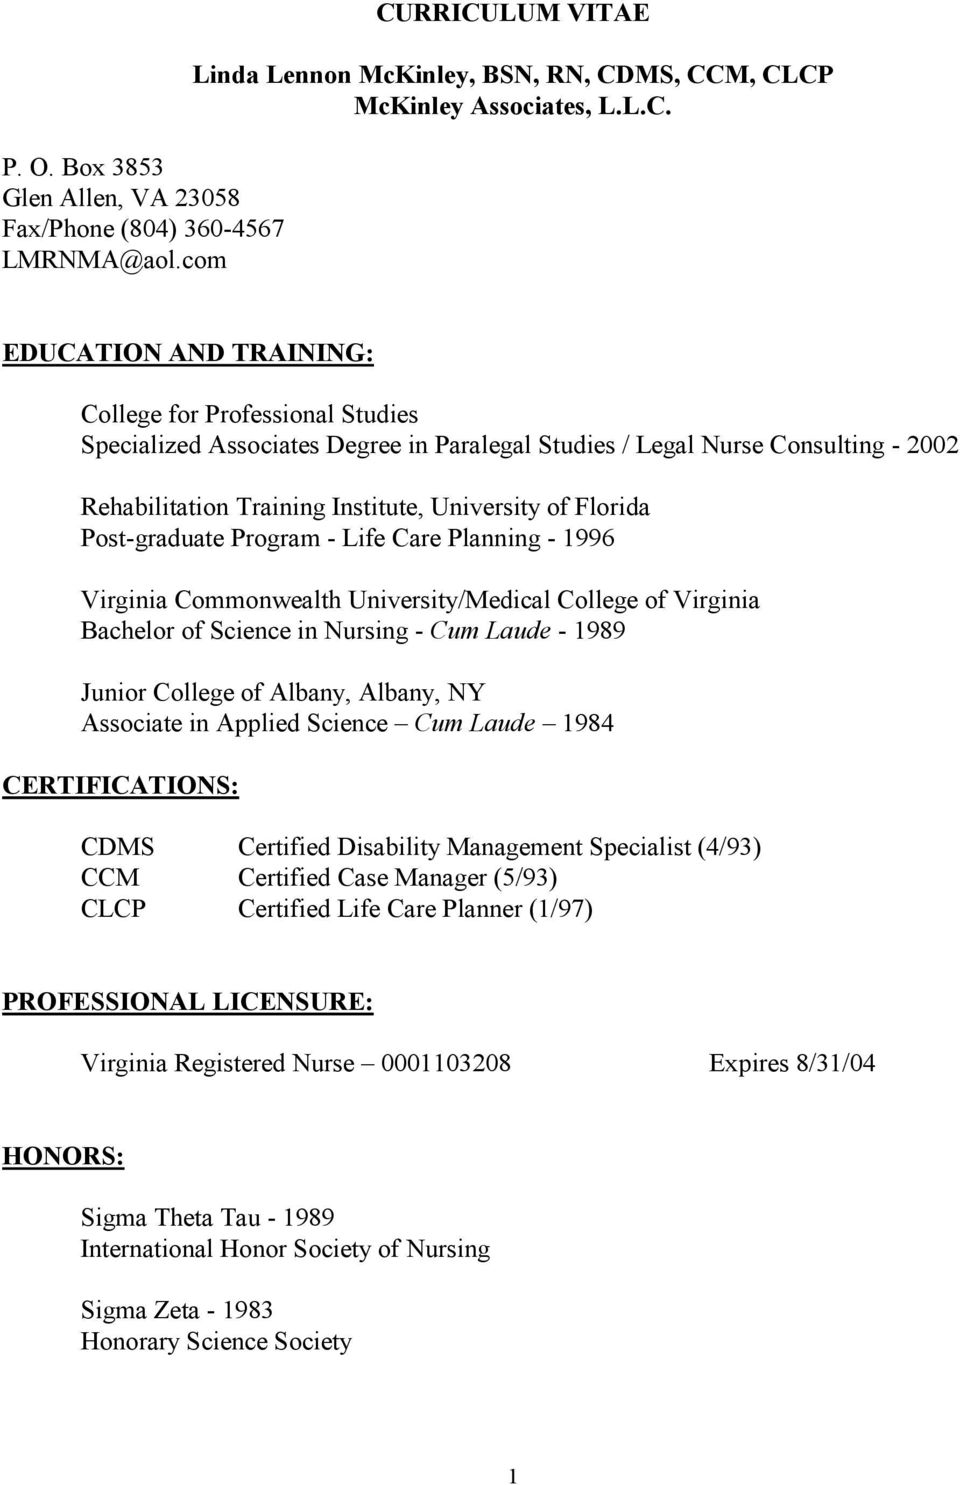 / Legal Nurse Consulting - 2002 Rehabilitation Training Institute, University of Florida Post-graduate Program - Life Care Planning - 1996 Virginia Commonwealth University/Medical College of Virginia